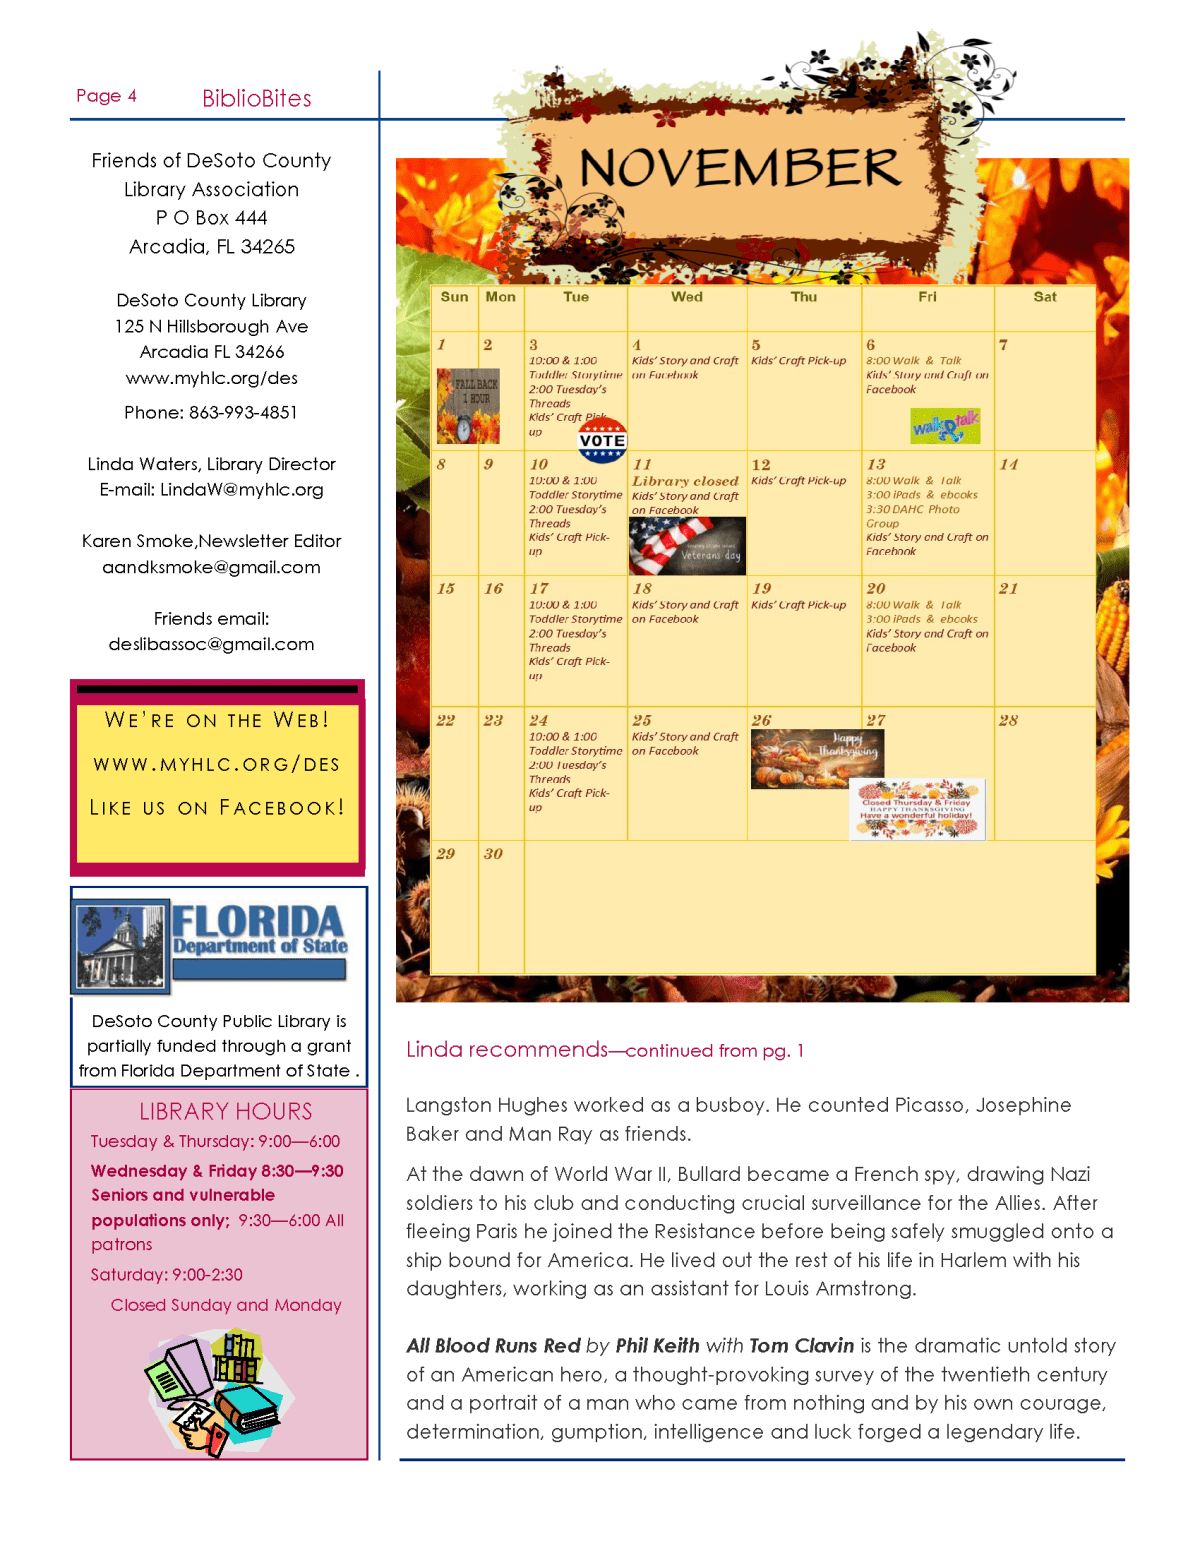 Page four of DeSoto November Newsletter, available for PDF download